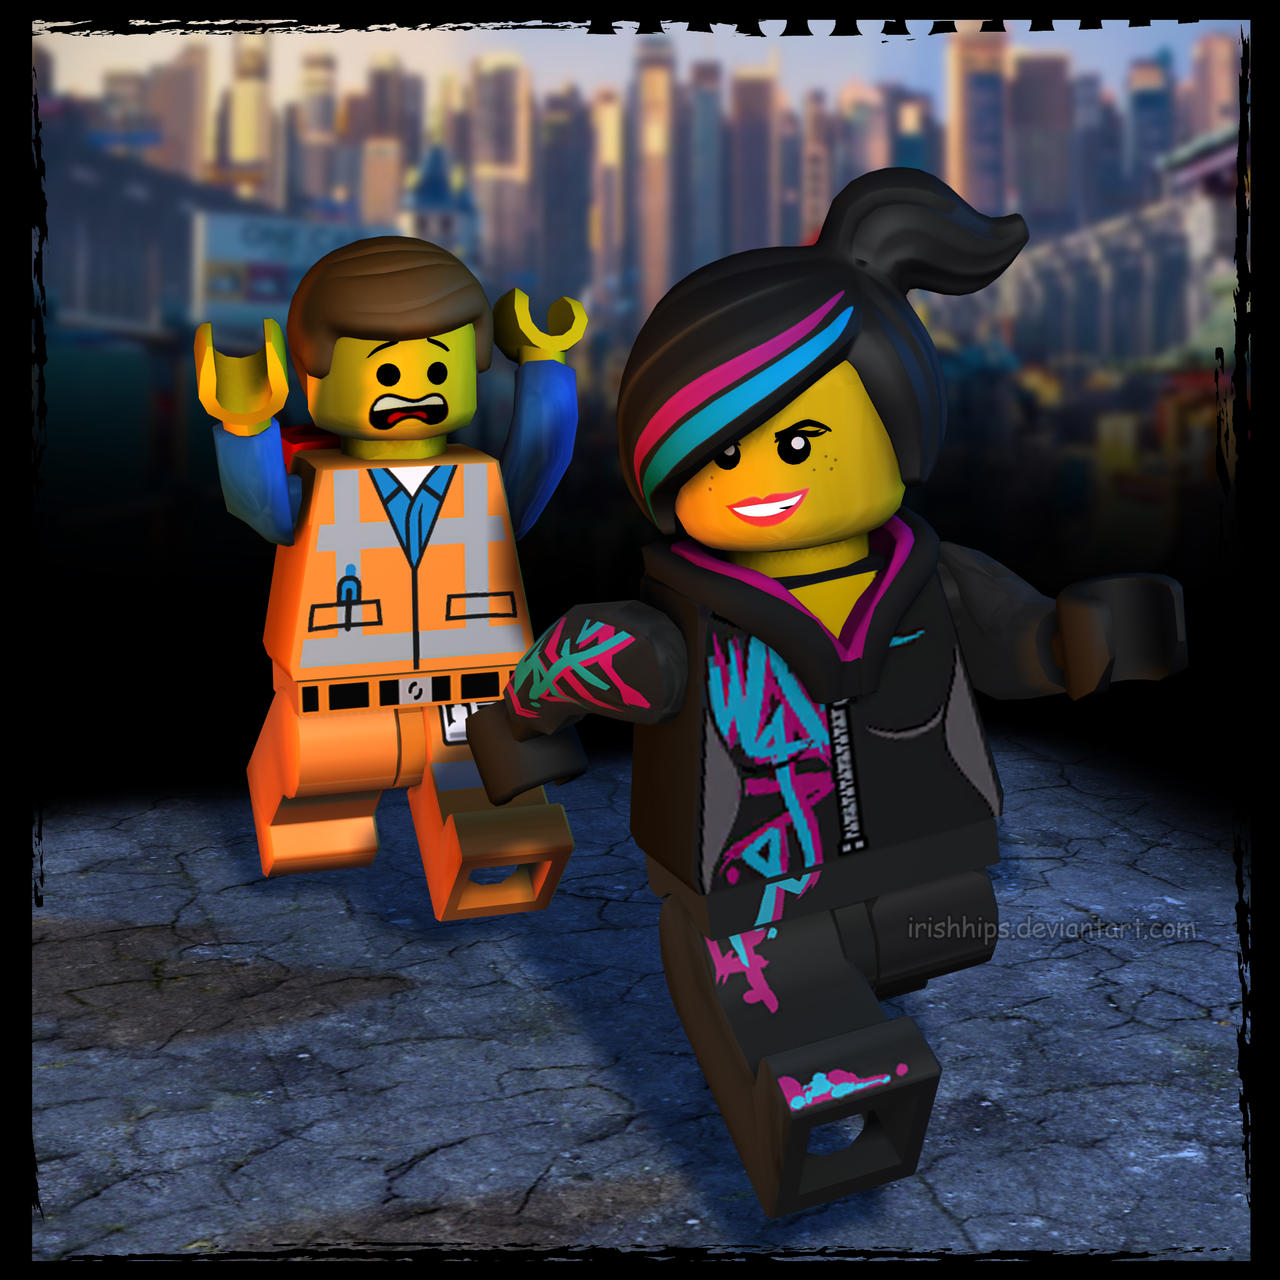 http://fc04.deviantart.net/fs70/i/2014/069/4/6/the_lego_movie__emmet_and_wyldstyle_by_irishhips-d79oucs.jpg